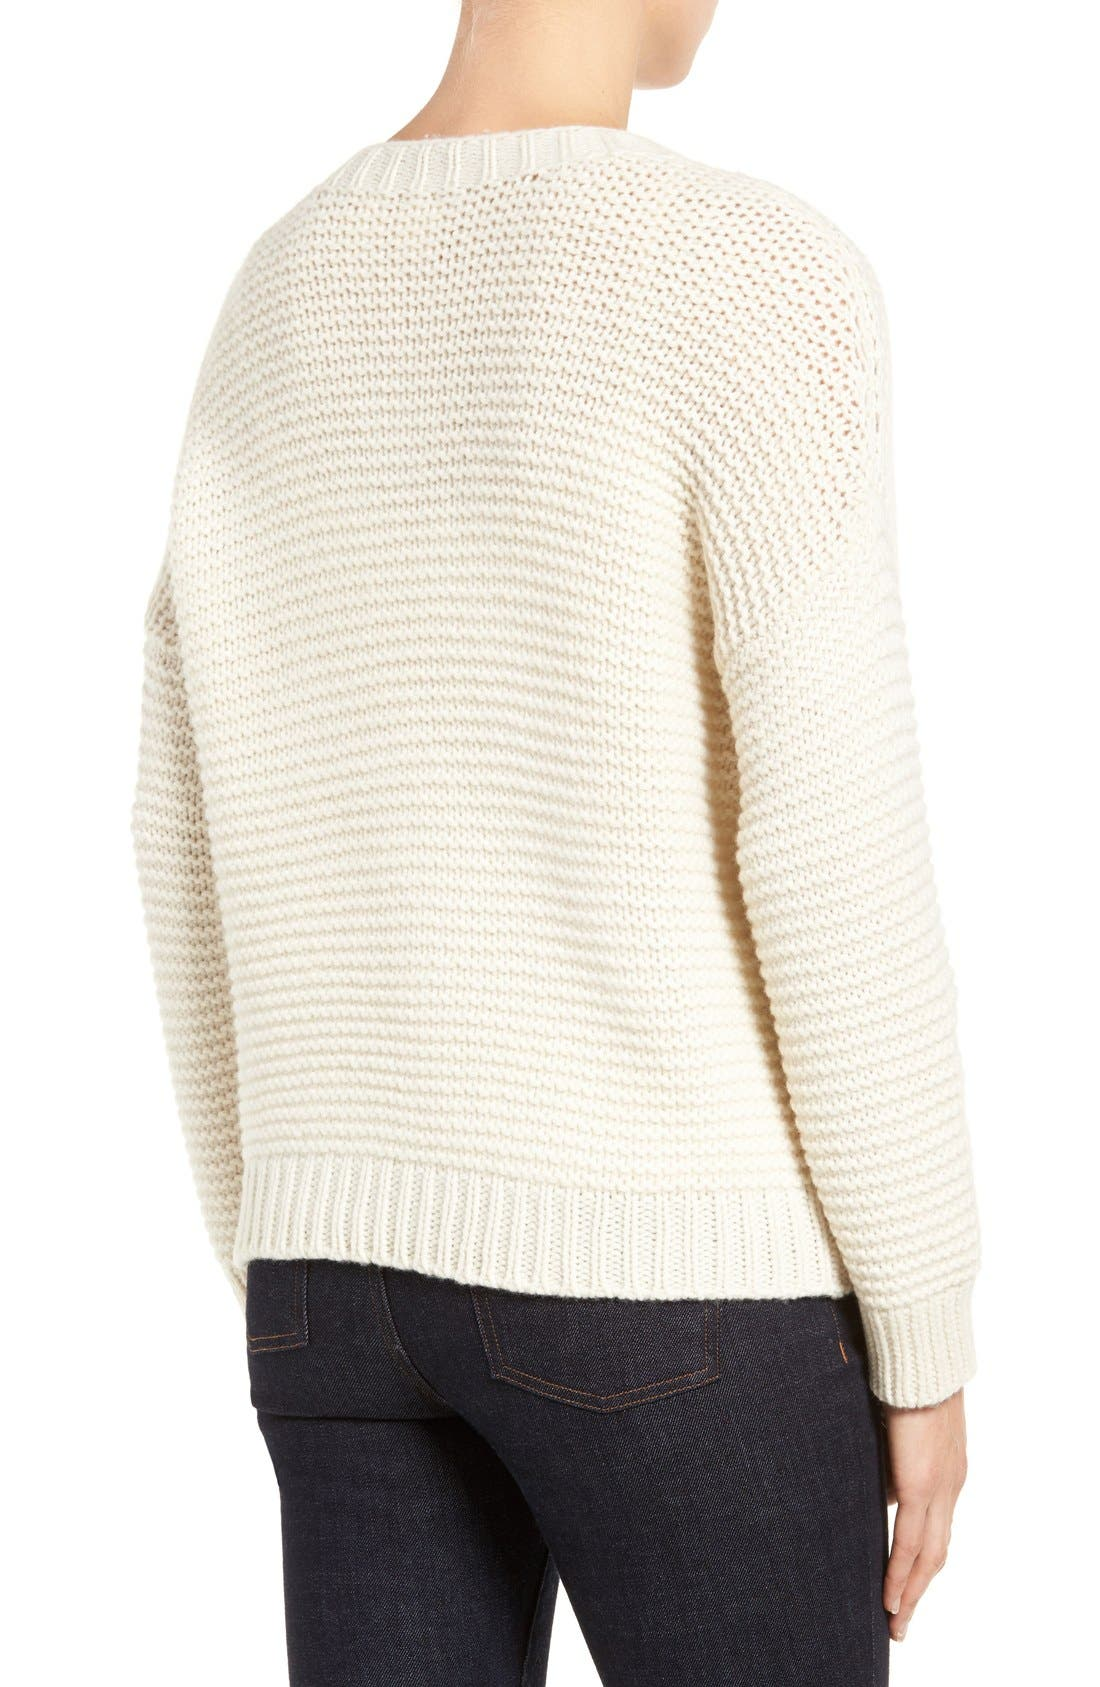 Lofty Recycled Cashmere Blend Sweater,                             Alternate thumbnail 2, color,                             103